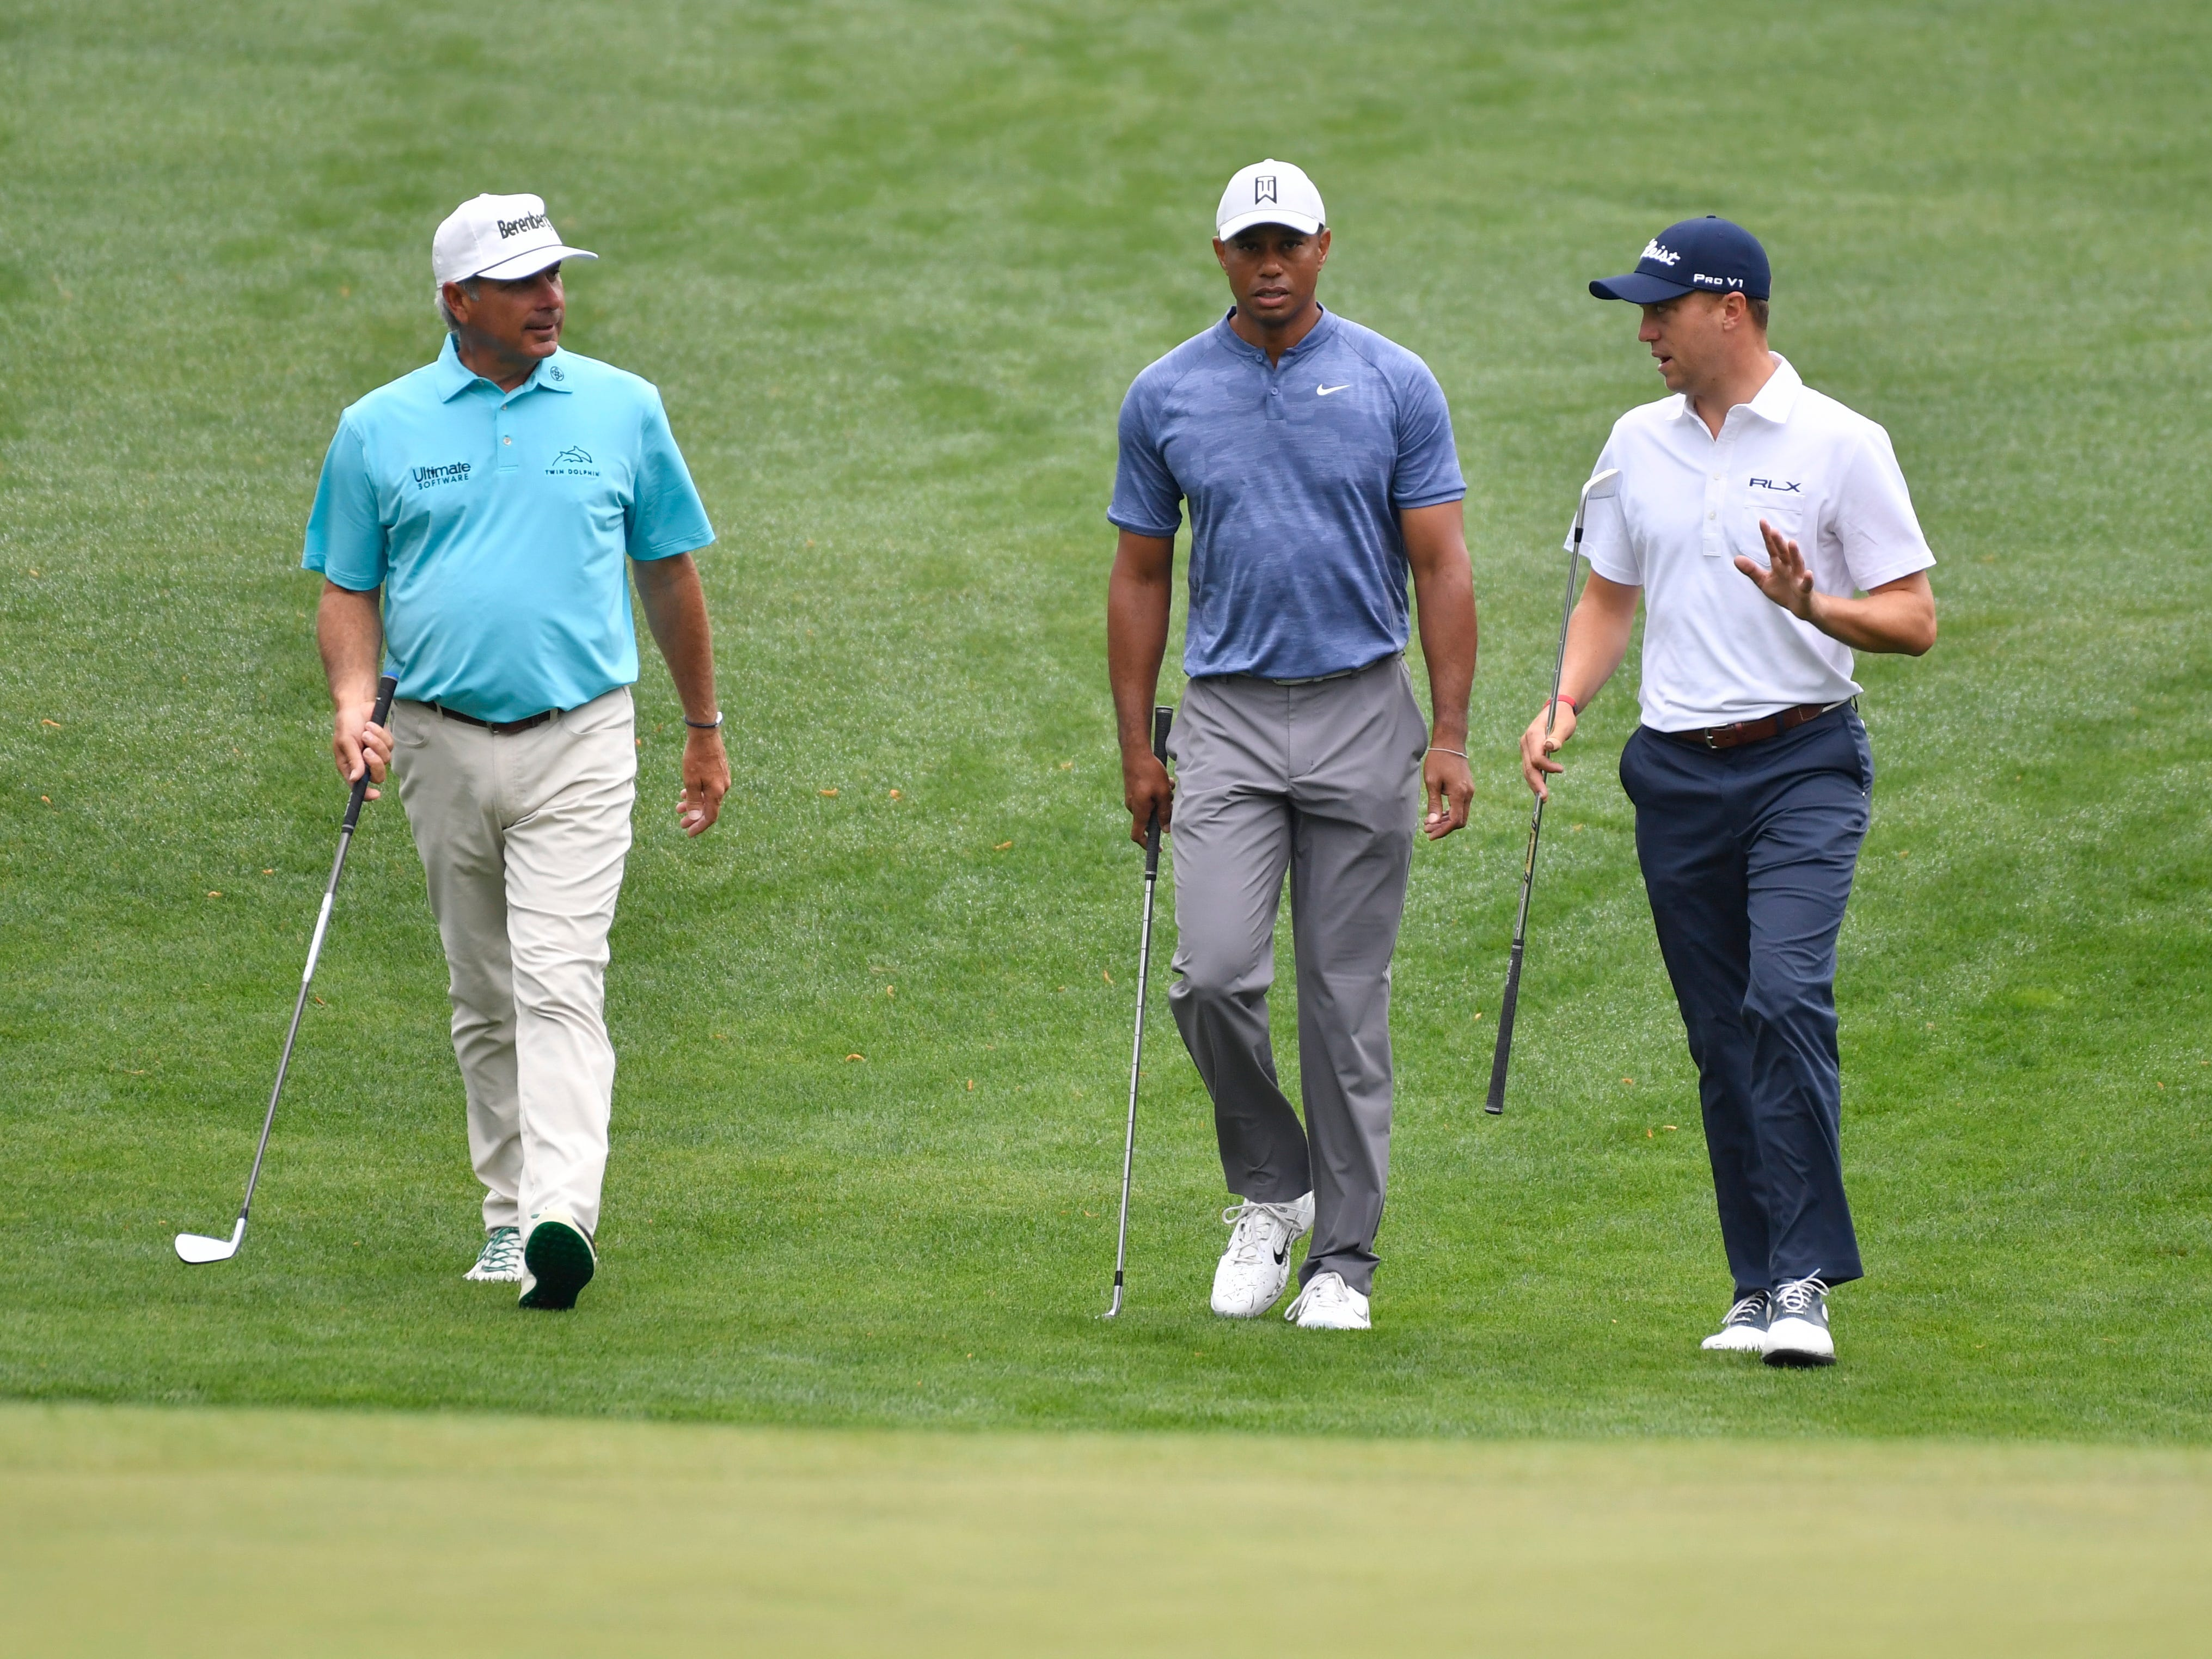 Fred Couples (left) Tiger Woods (center) and Justin Thomas walk to the 16th green during a practice round for the Masters golf tournament at Augusta National Golf Club.